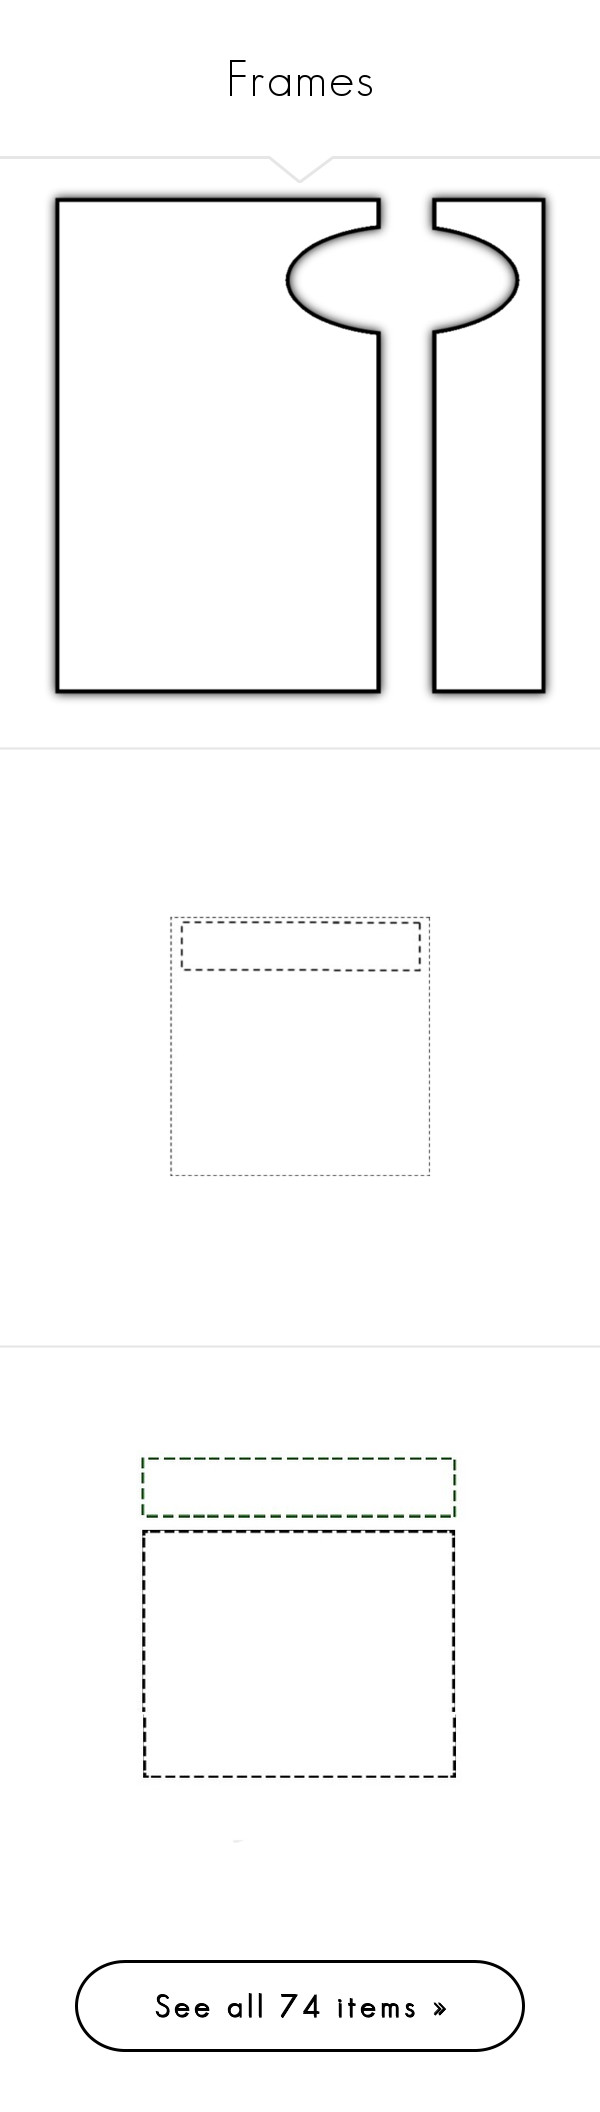 """""""Frames"""" by rasa-j ❤ liked on Polyvore featuring frames, backgrounds, borders, shadows, ramki, effect, picture frame, fillers, tip outlines and outlines"""